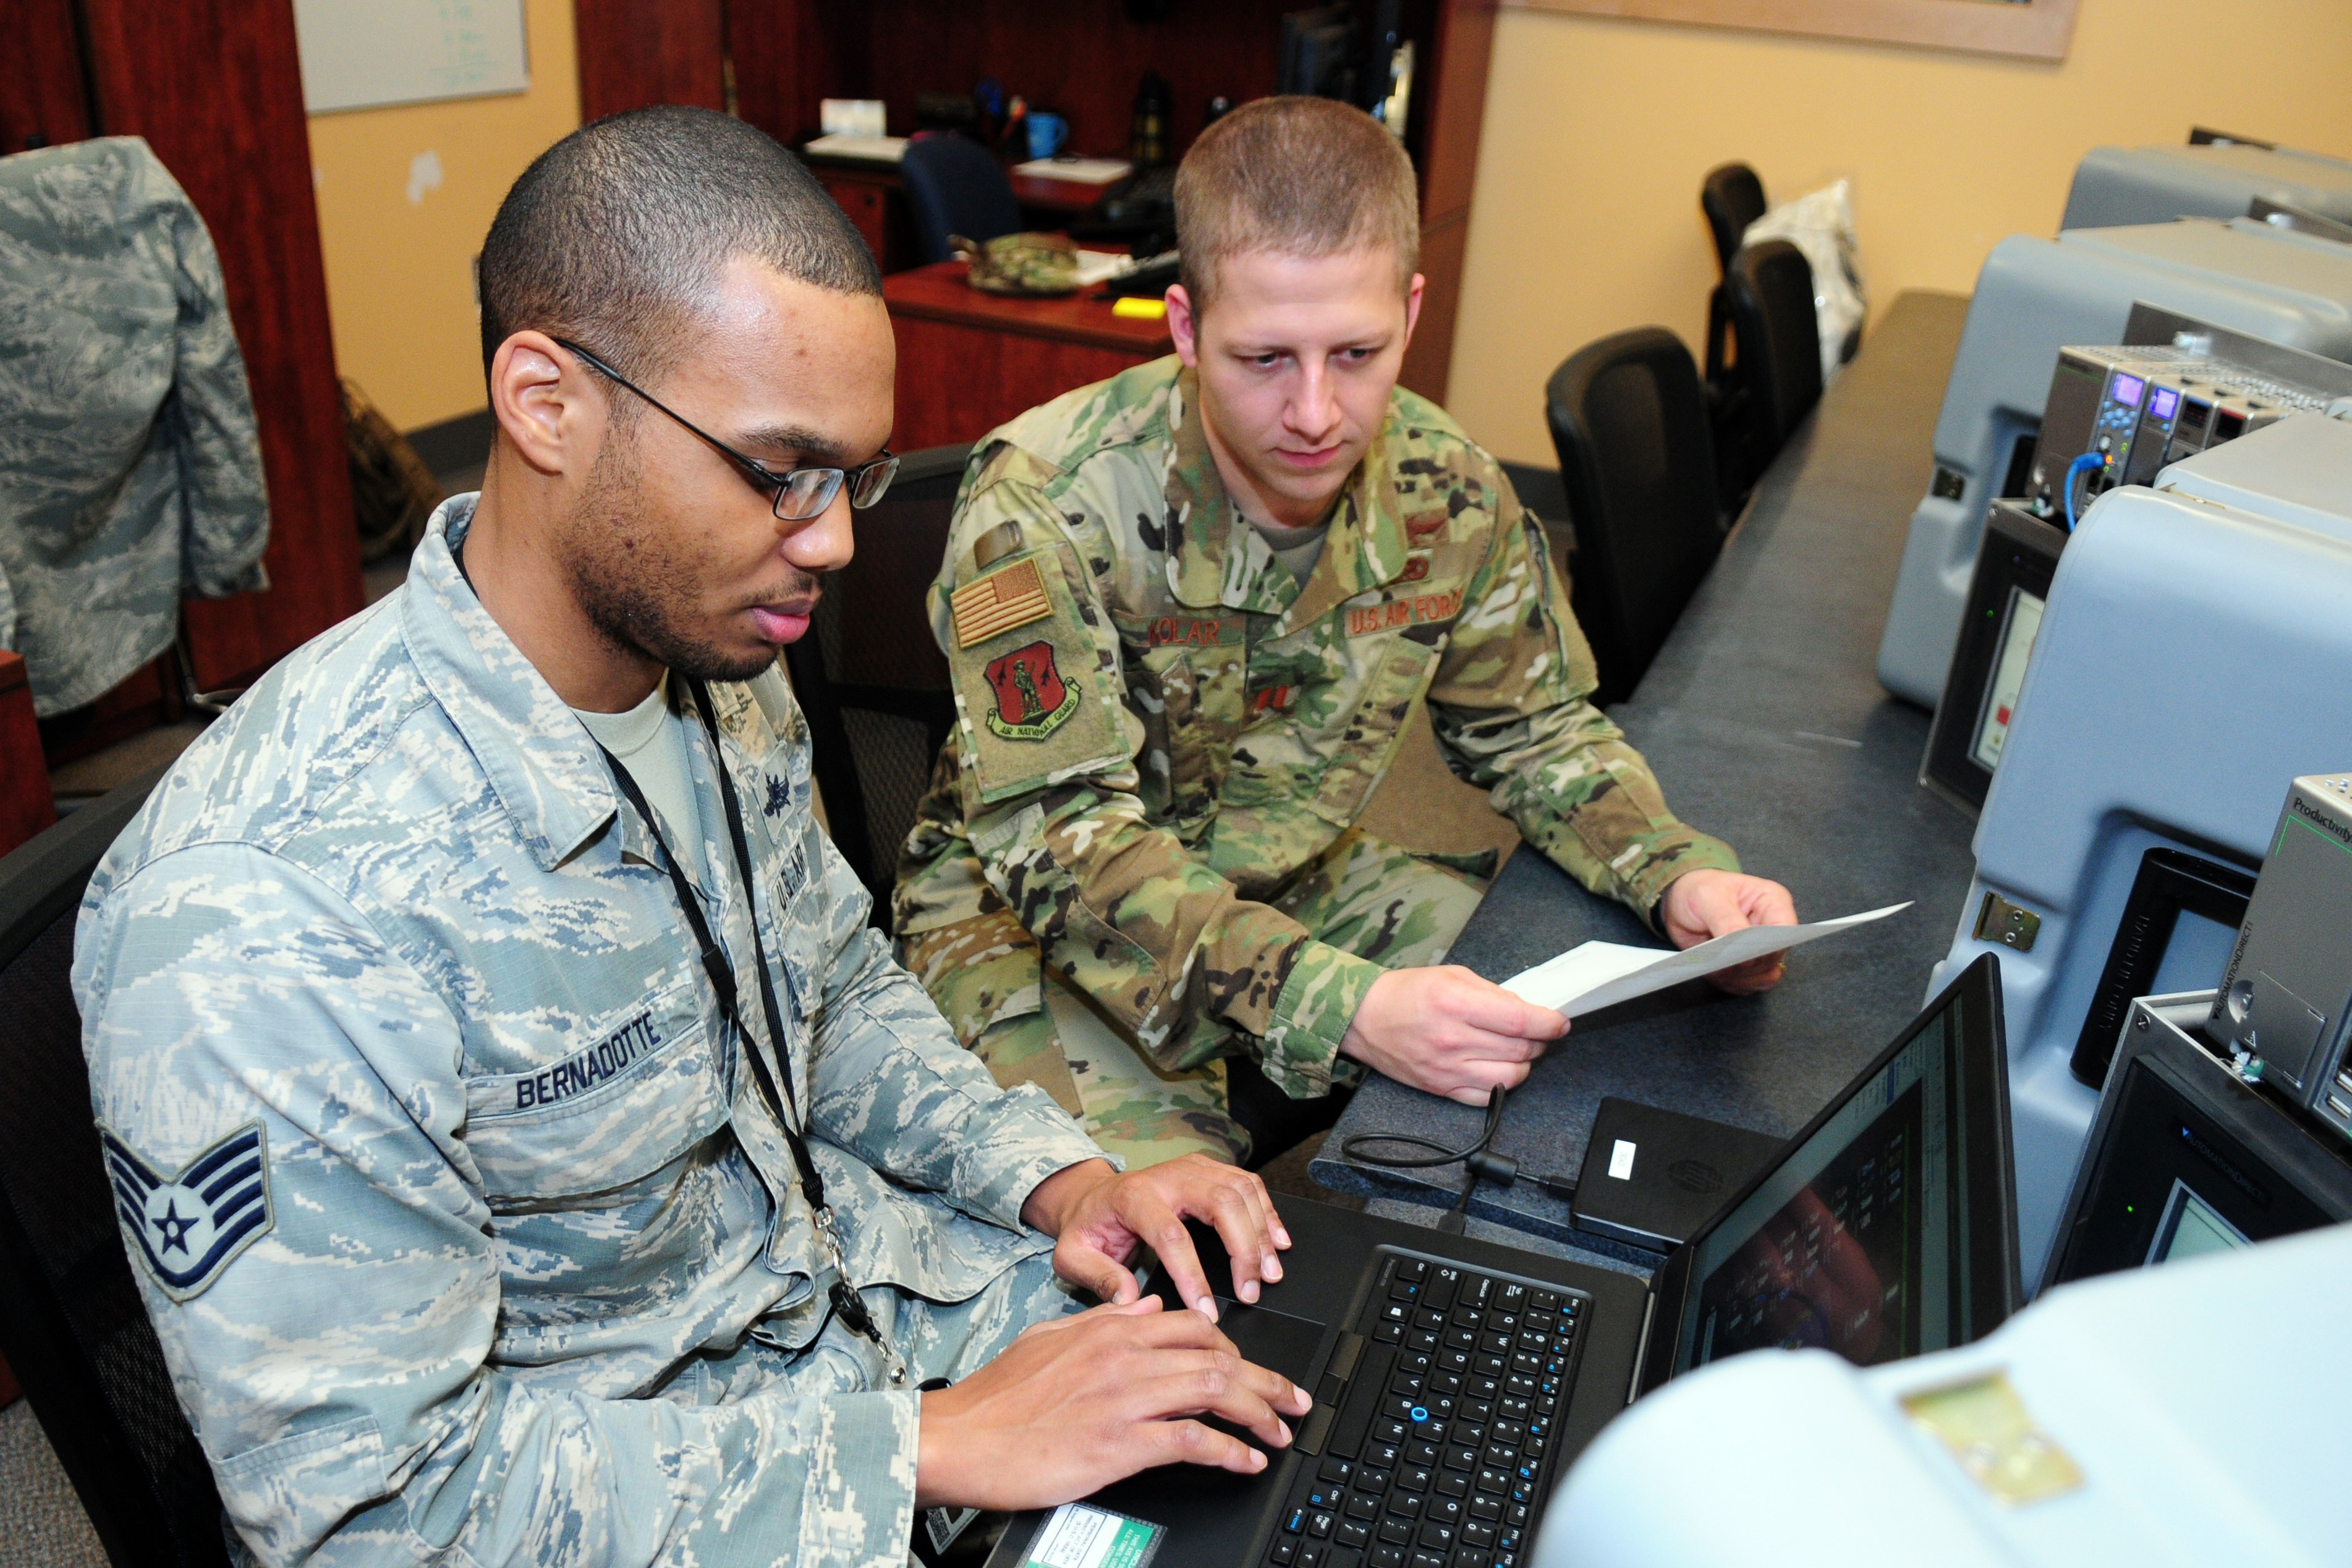 Reserve, Guard Leaders Provide Cybersecurity Updates > U.S. DEPARTMENT OF  DEFENSE > Defense Department News